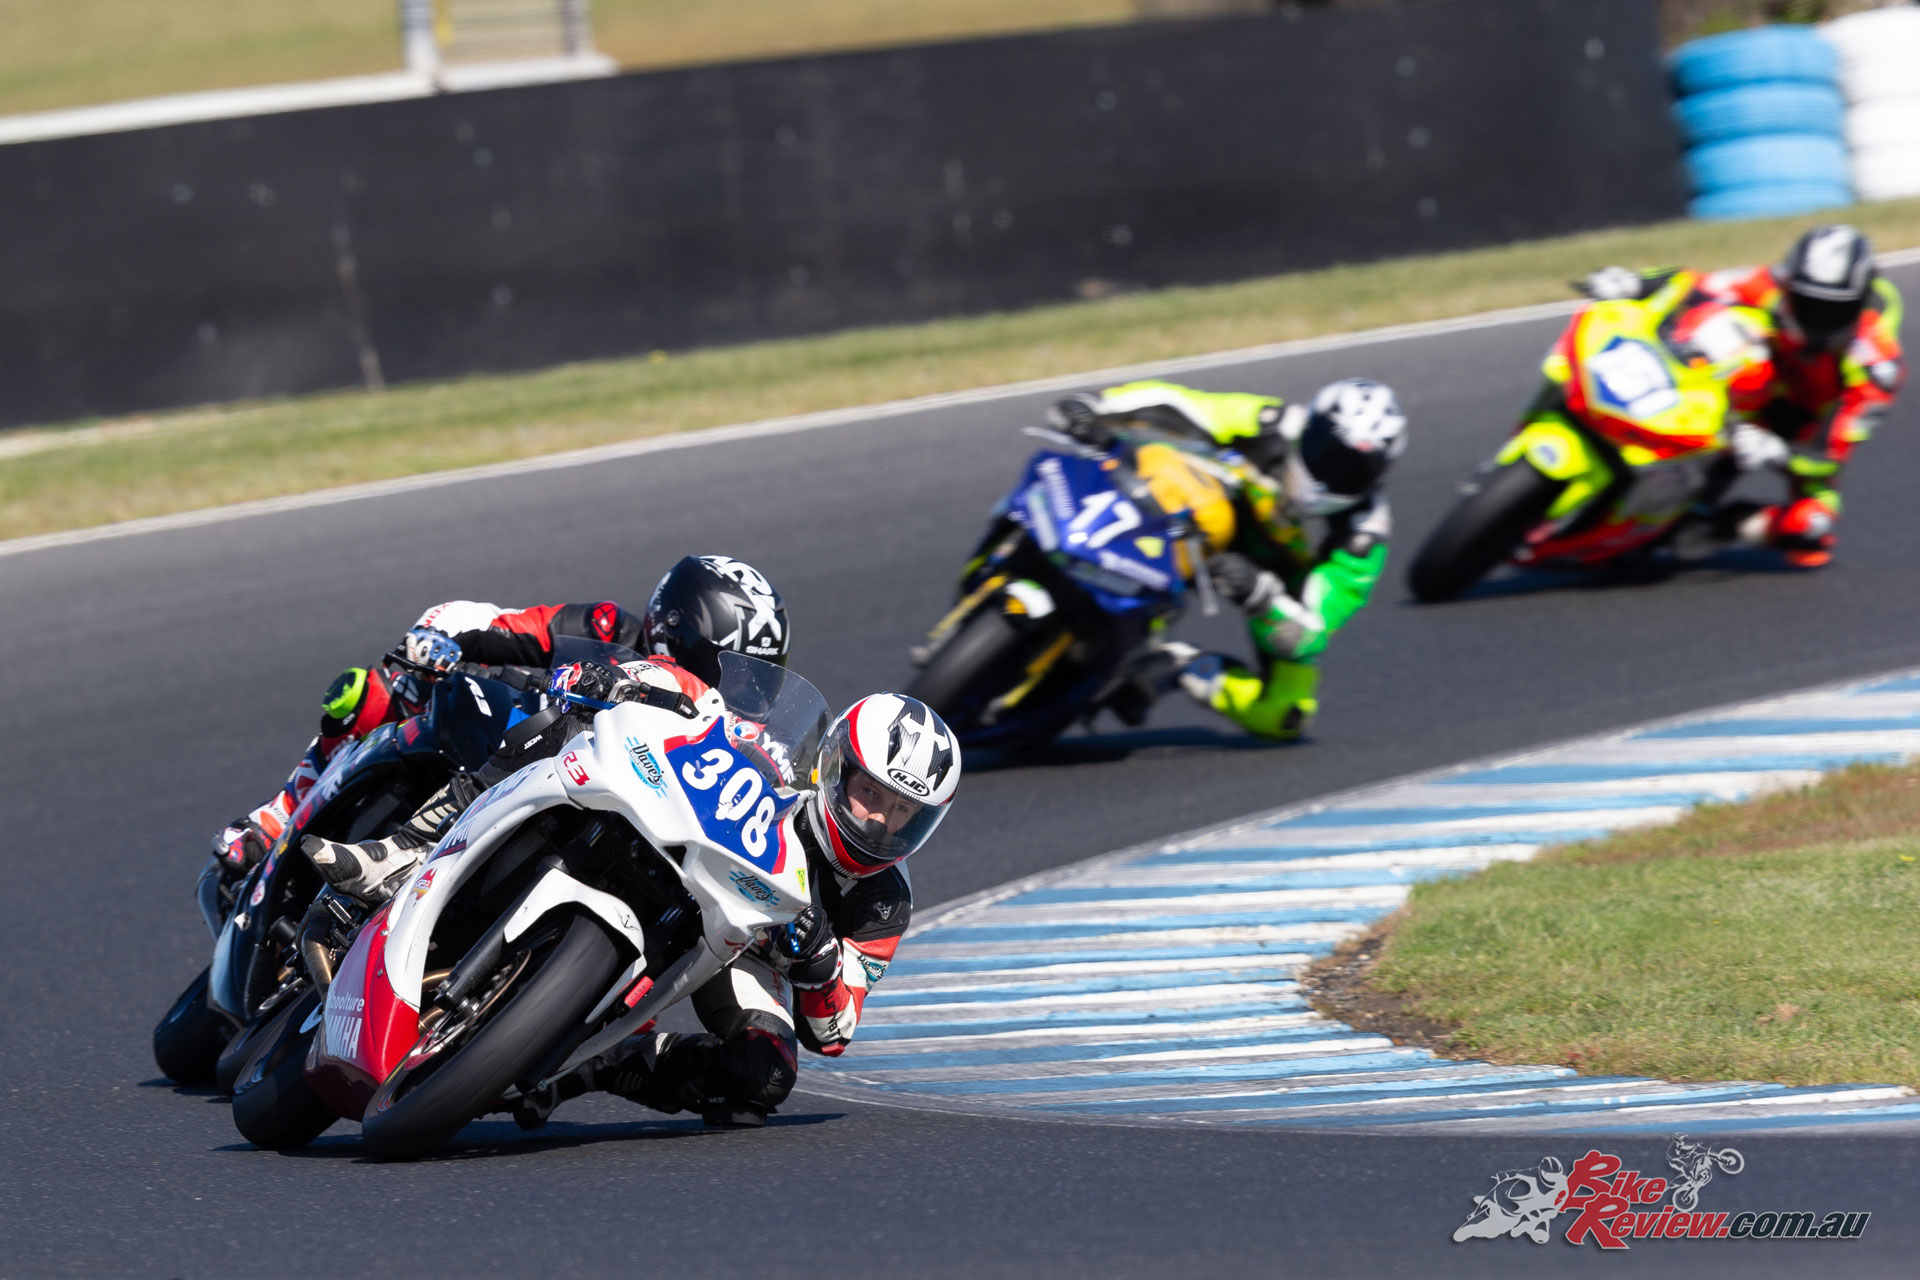 ASBK returns in 2019 with the calendar just announced - Image by TBG